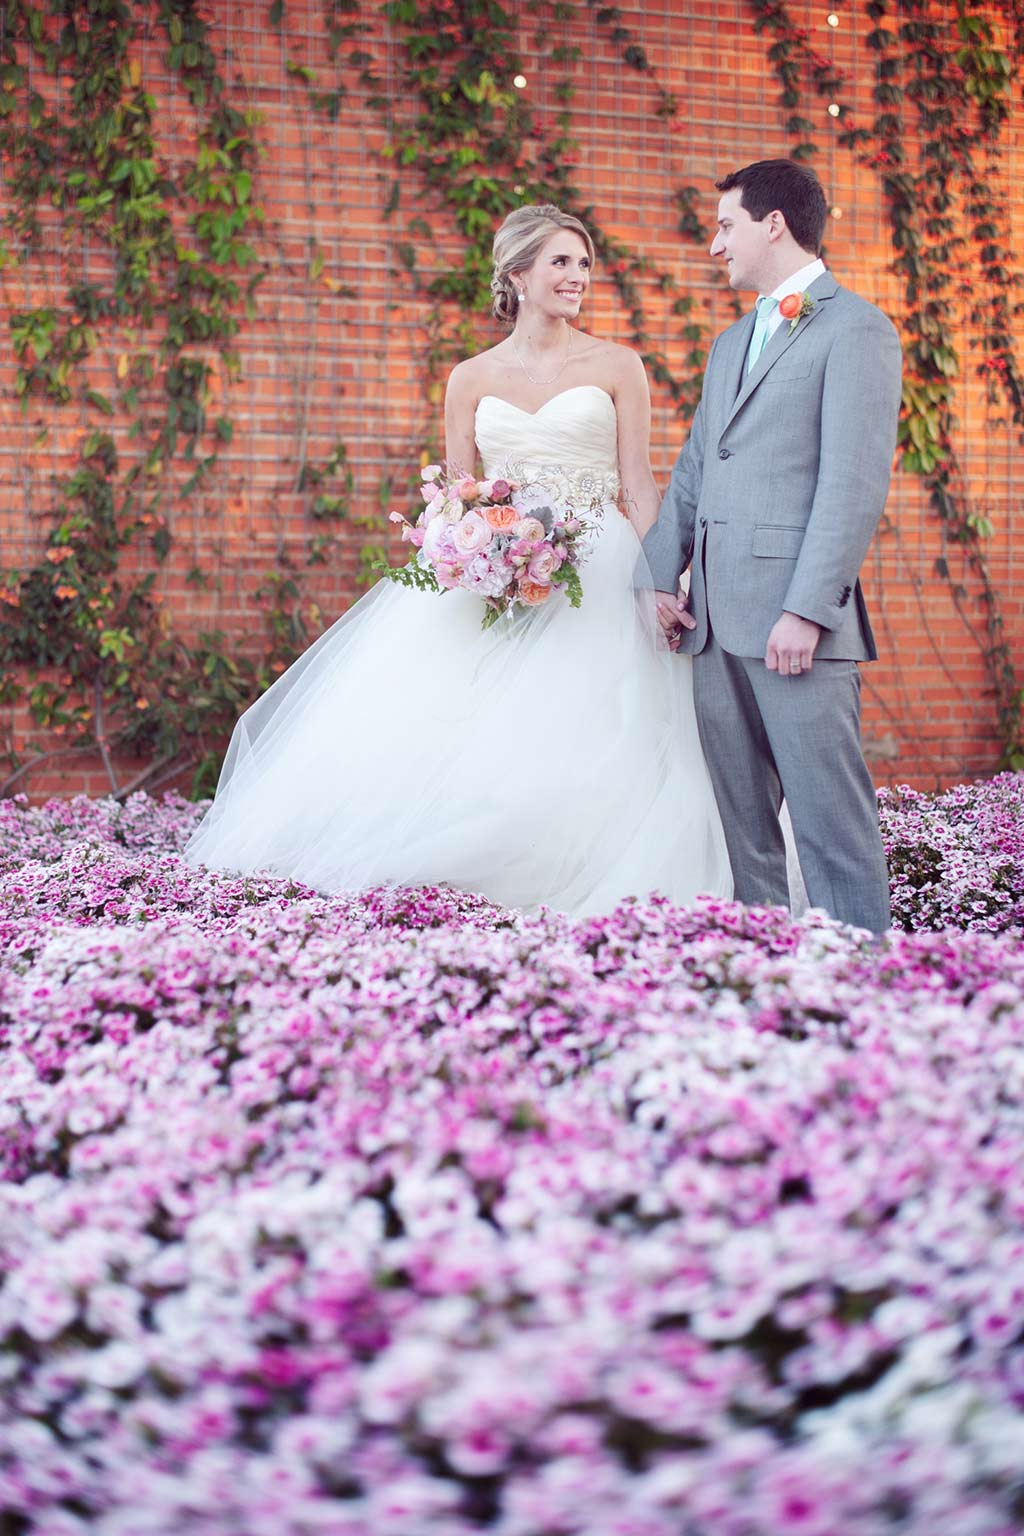 Bridge and groom portrait over purple flower field at Hickory Street Annex in Dallas